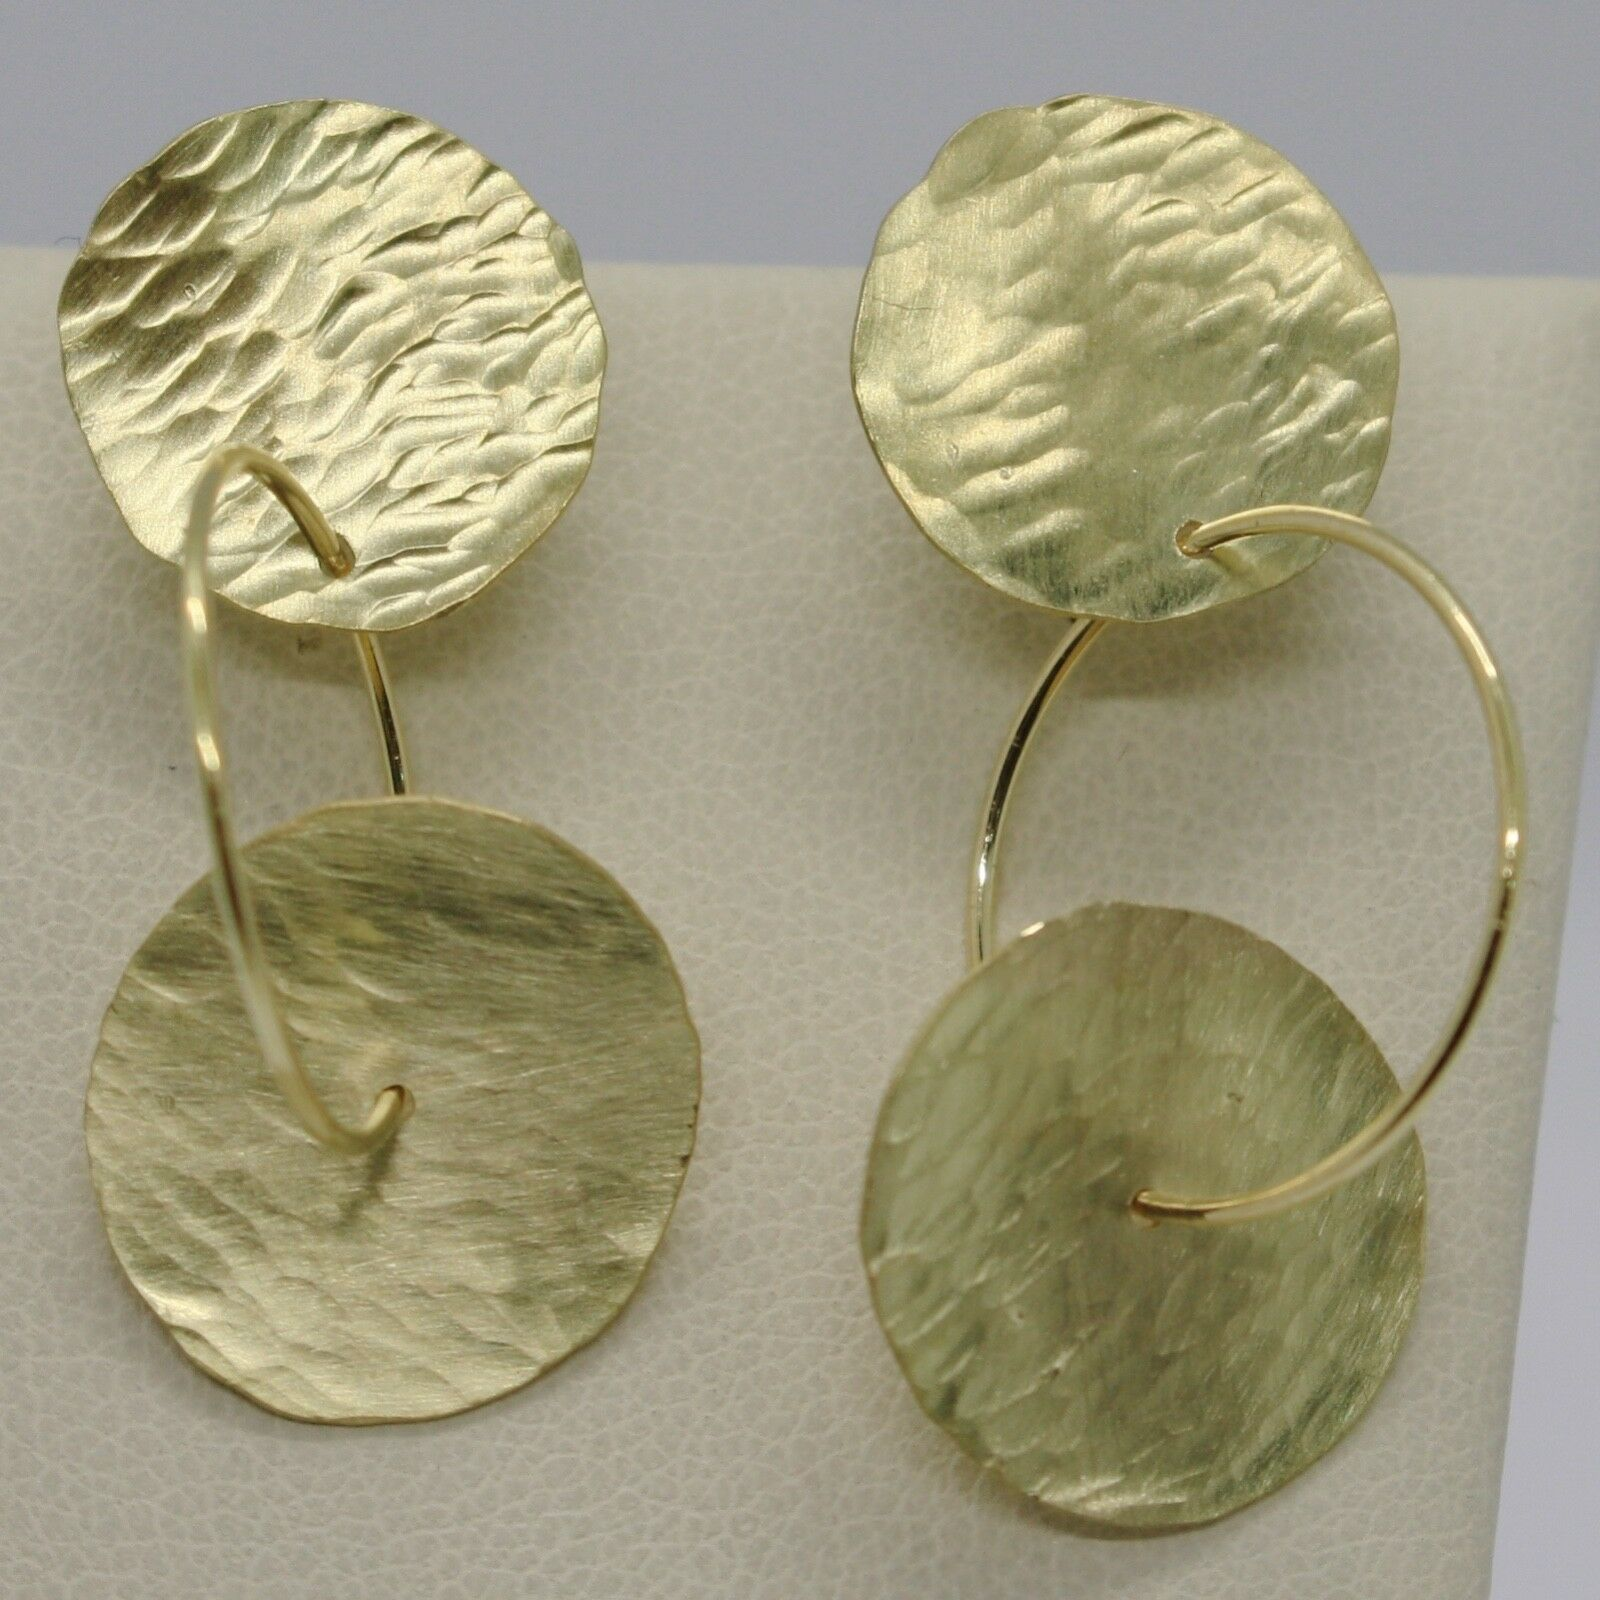 18K YELLOW GOLD FINELY WORKED AND HAMMERED PENDANT DOUBLE DISC & CIRCLE EARRINGS